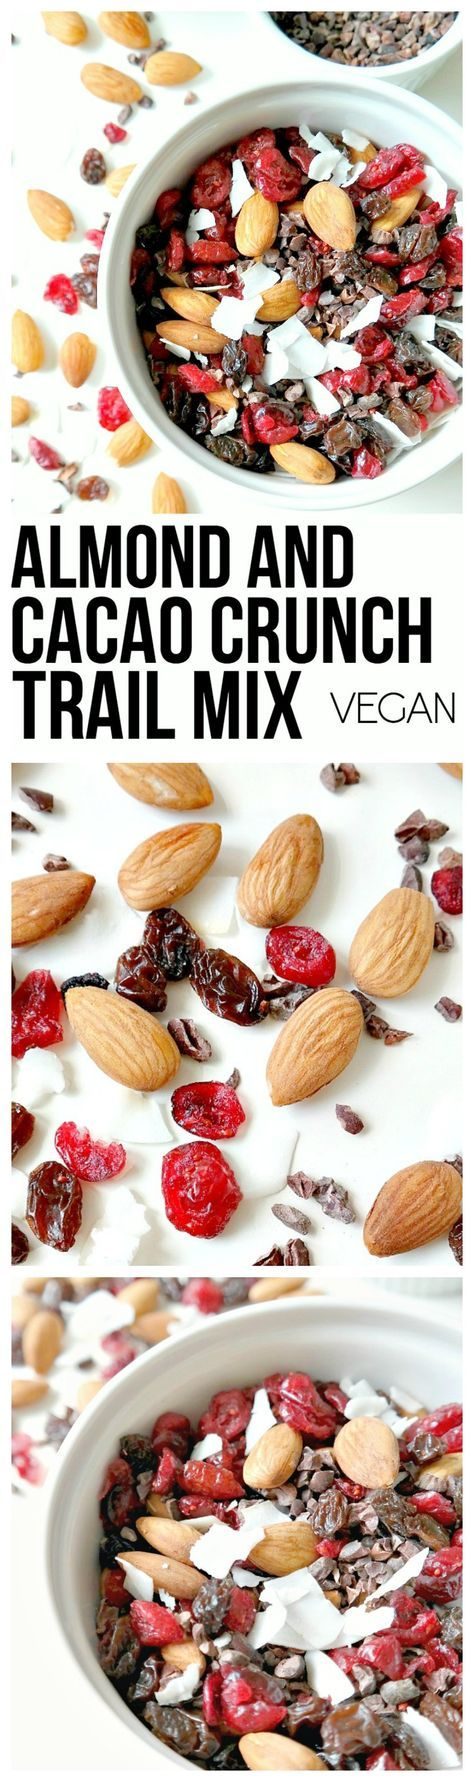 Almond Cacao Crunch Trail Mix